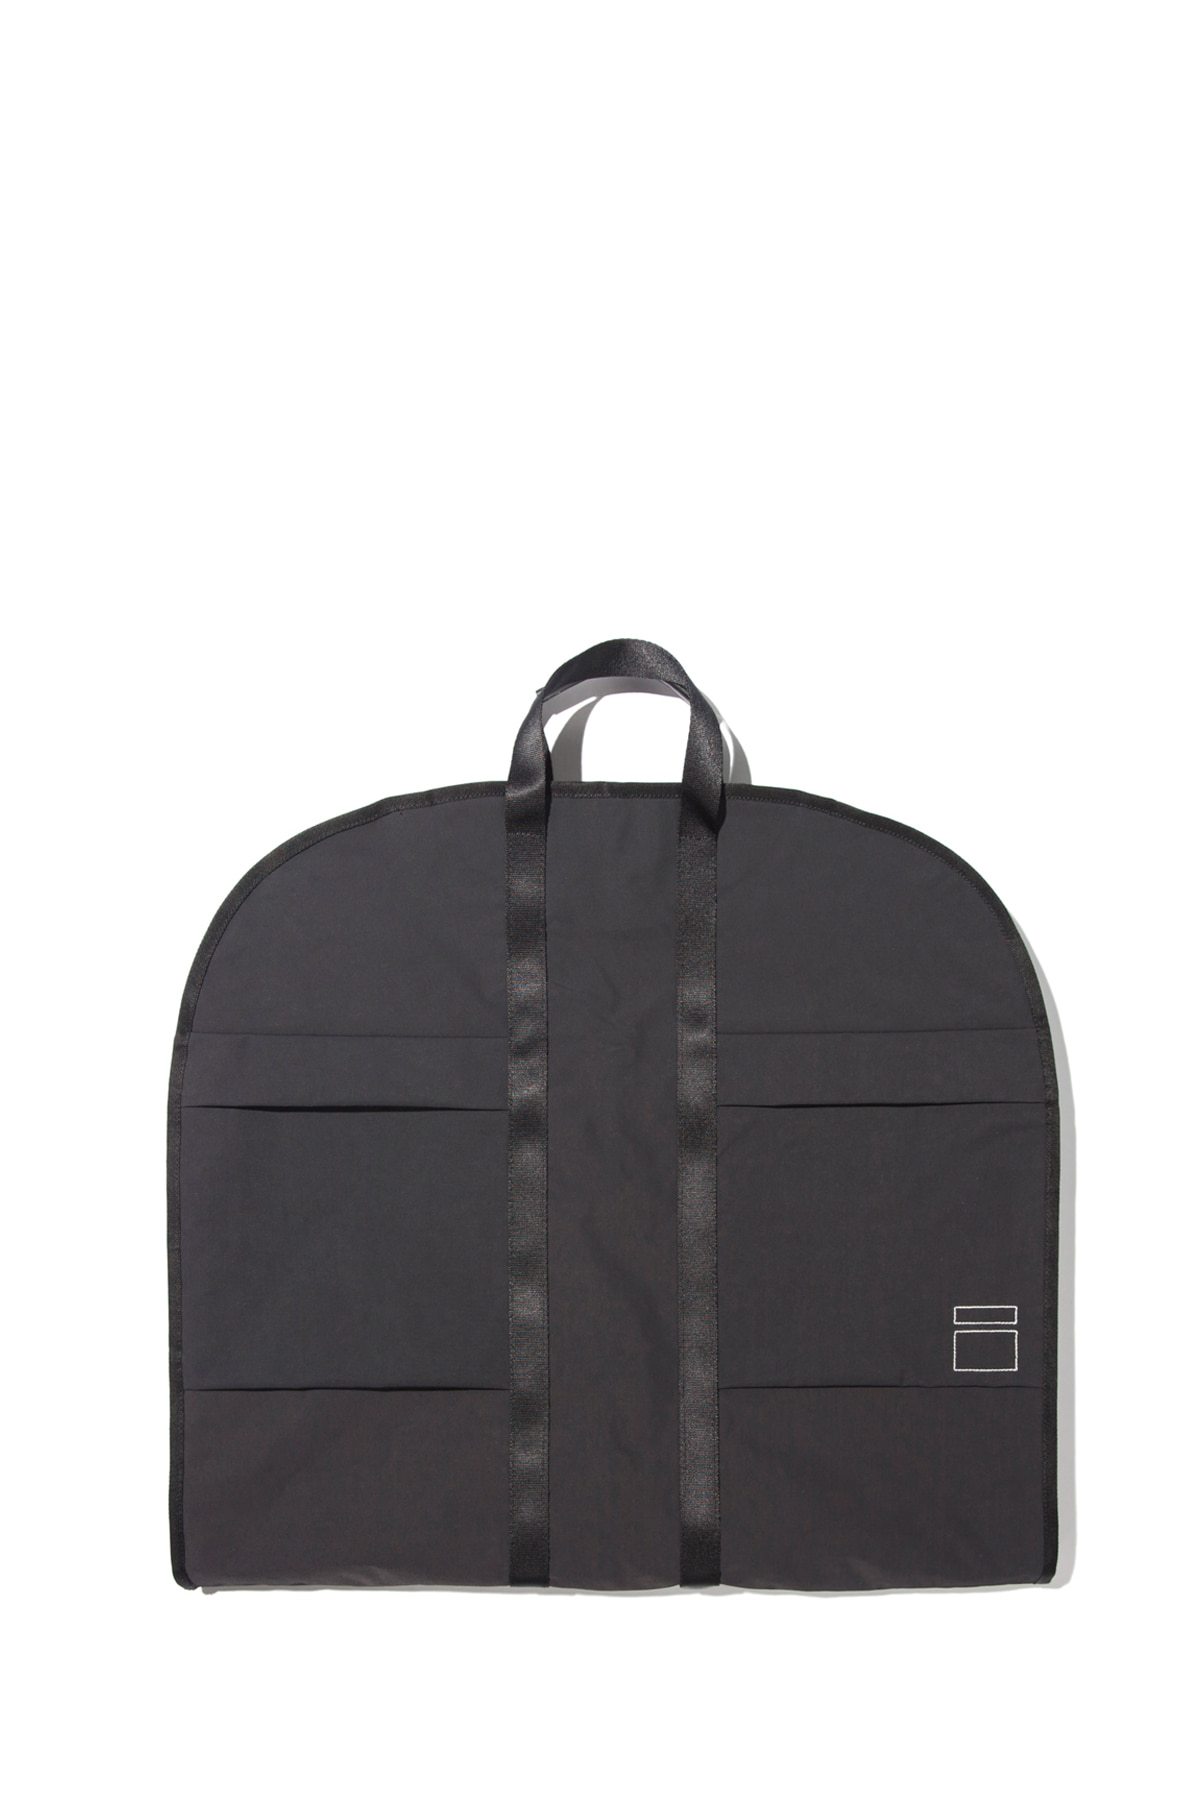 Blankof : TLG 01 GMT Garment Bag (Black)